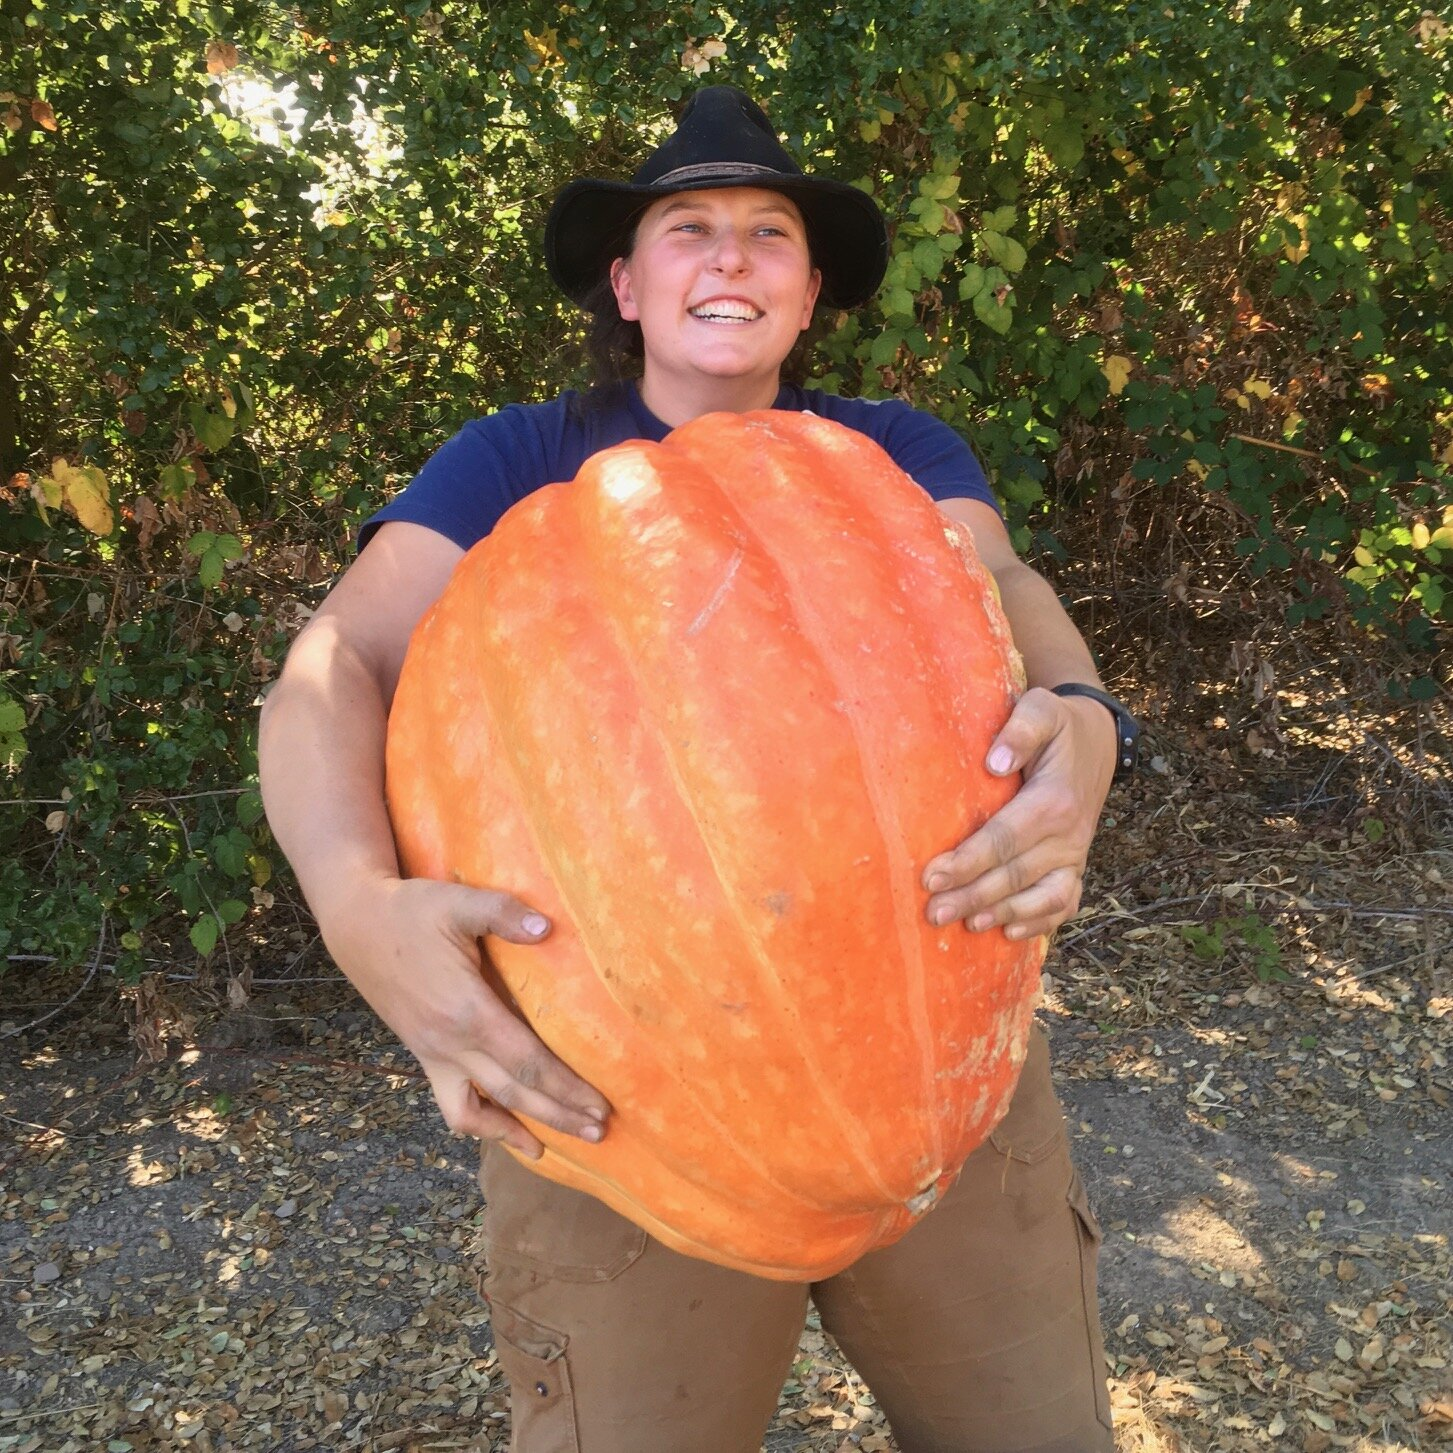 They aren't as big as Dr. Pumpy, pictured here, but there is a nice Jack-O-Lantern pumpkin waiting for you out on the farm!